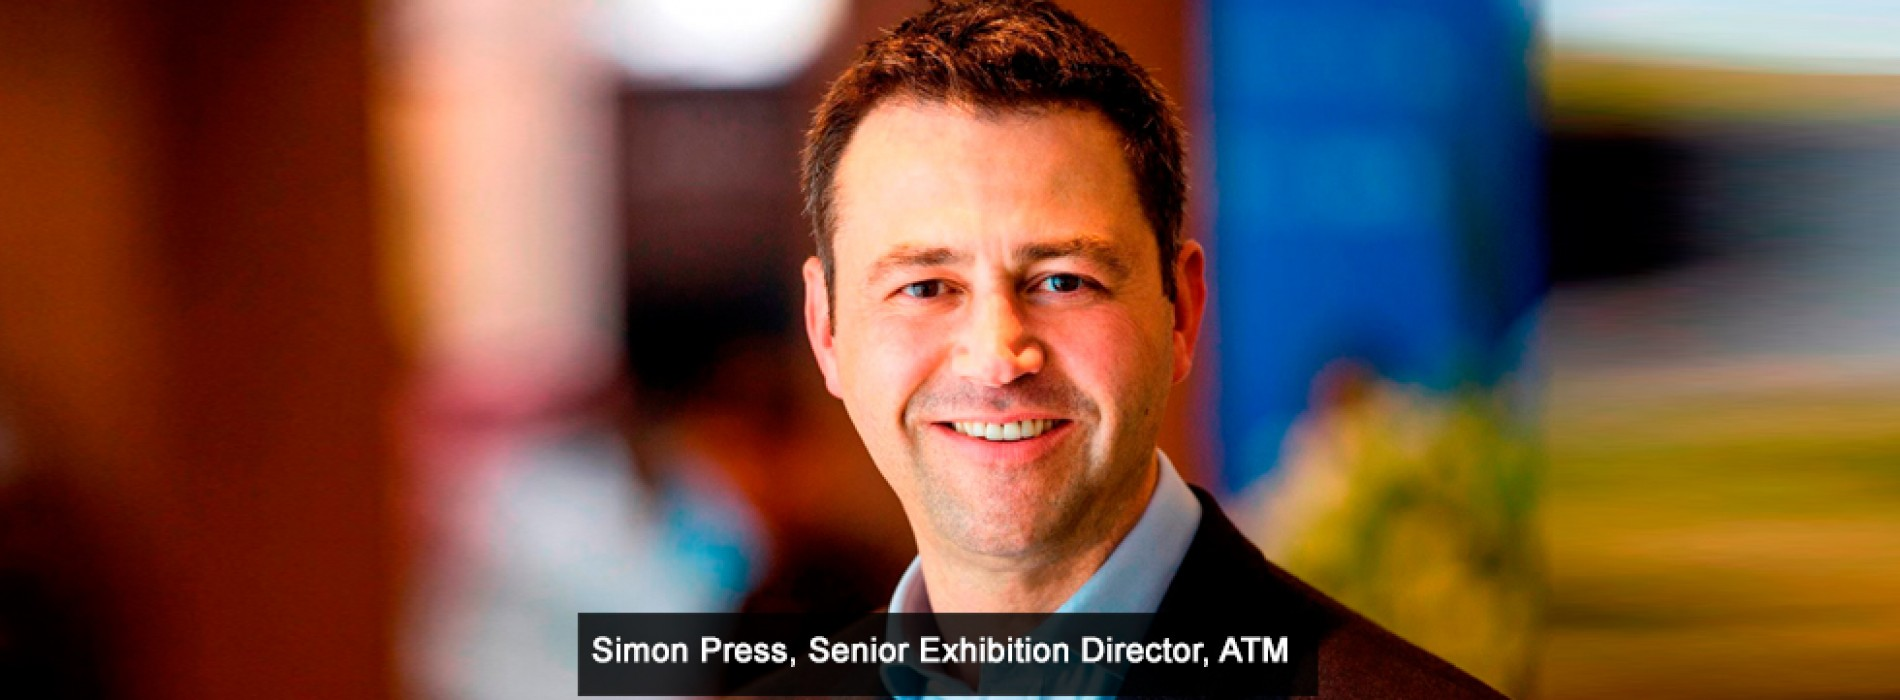 Responsible Tourism to headline ATM 2018